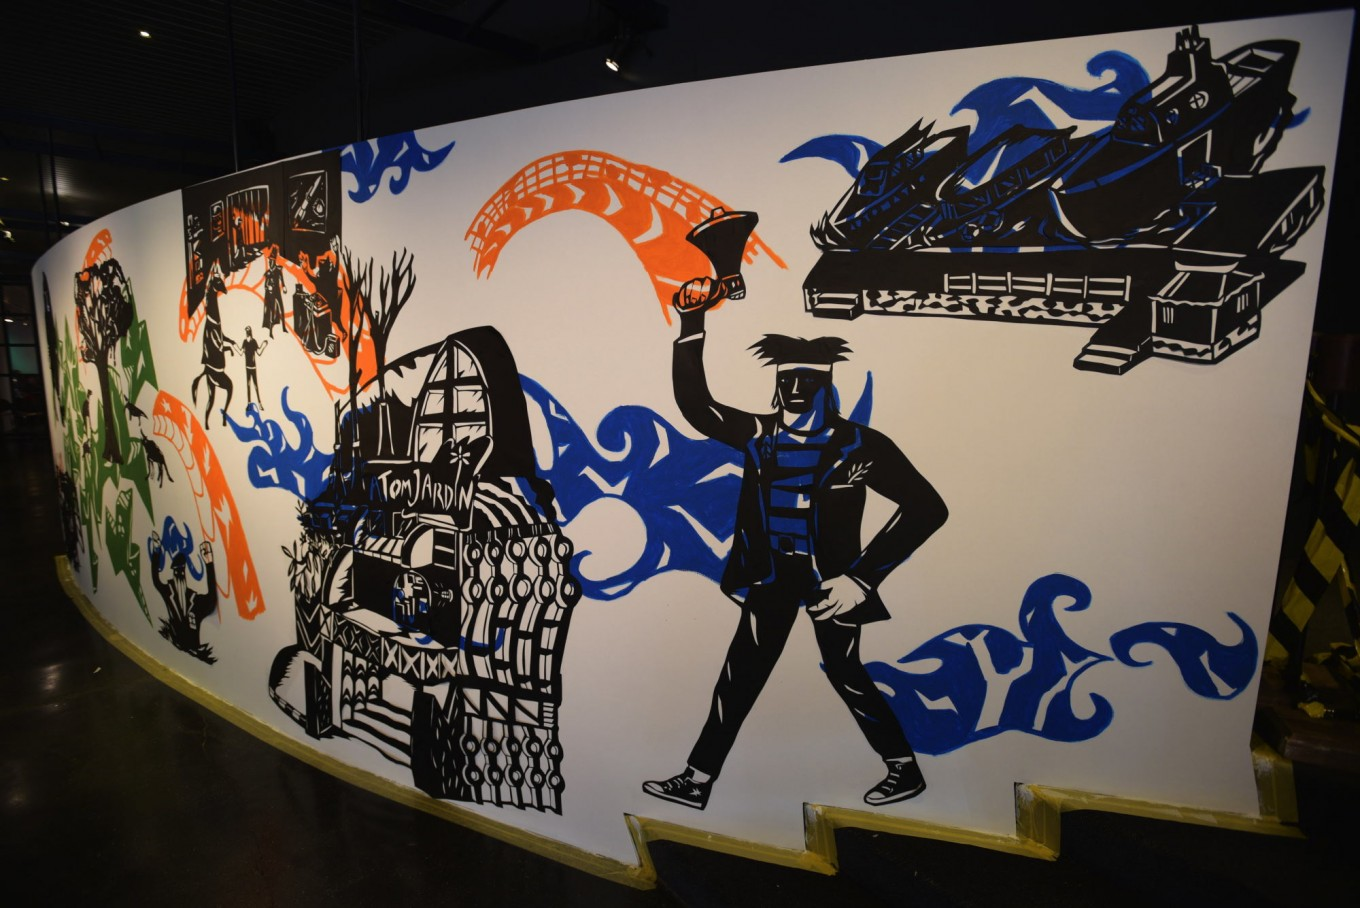 A mural painting by Yudha Sandy, a master of paper cutting techniques.